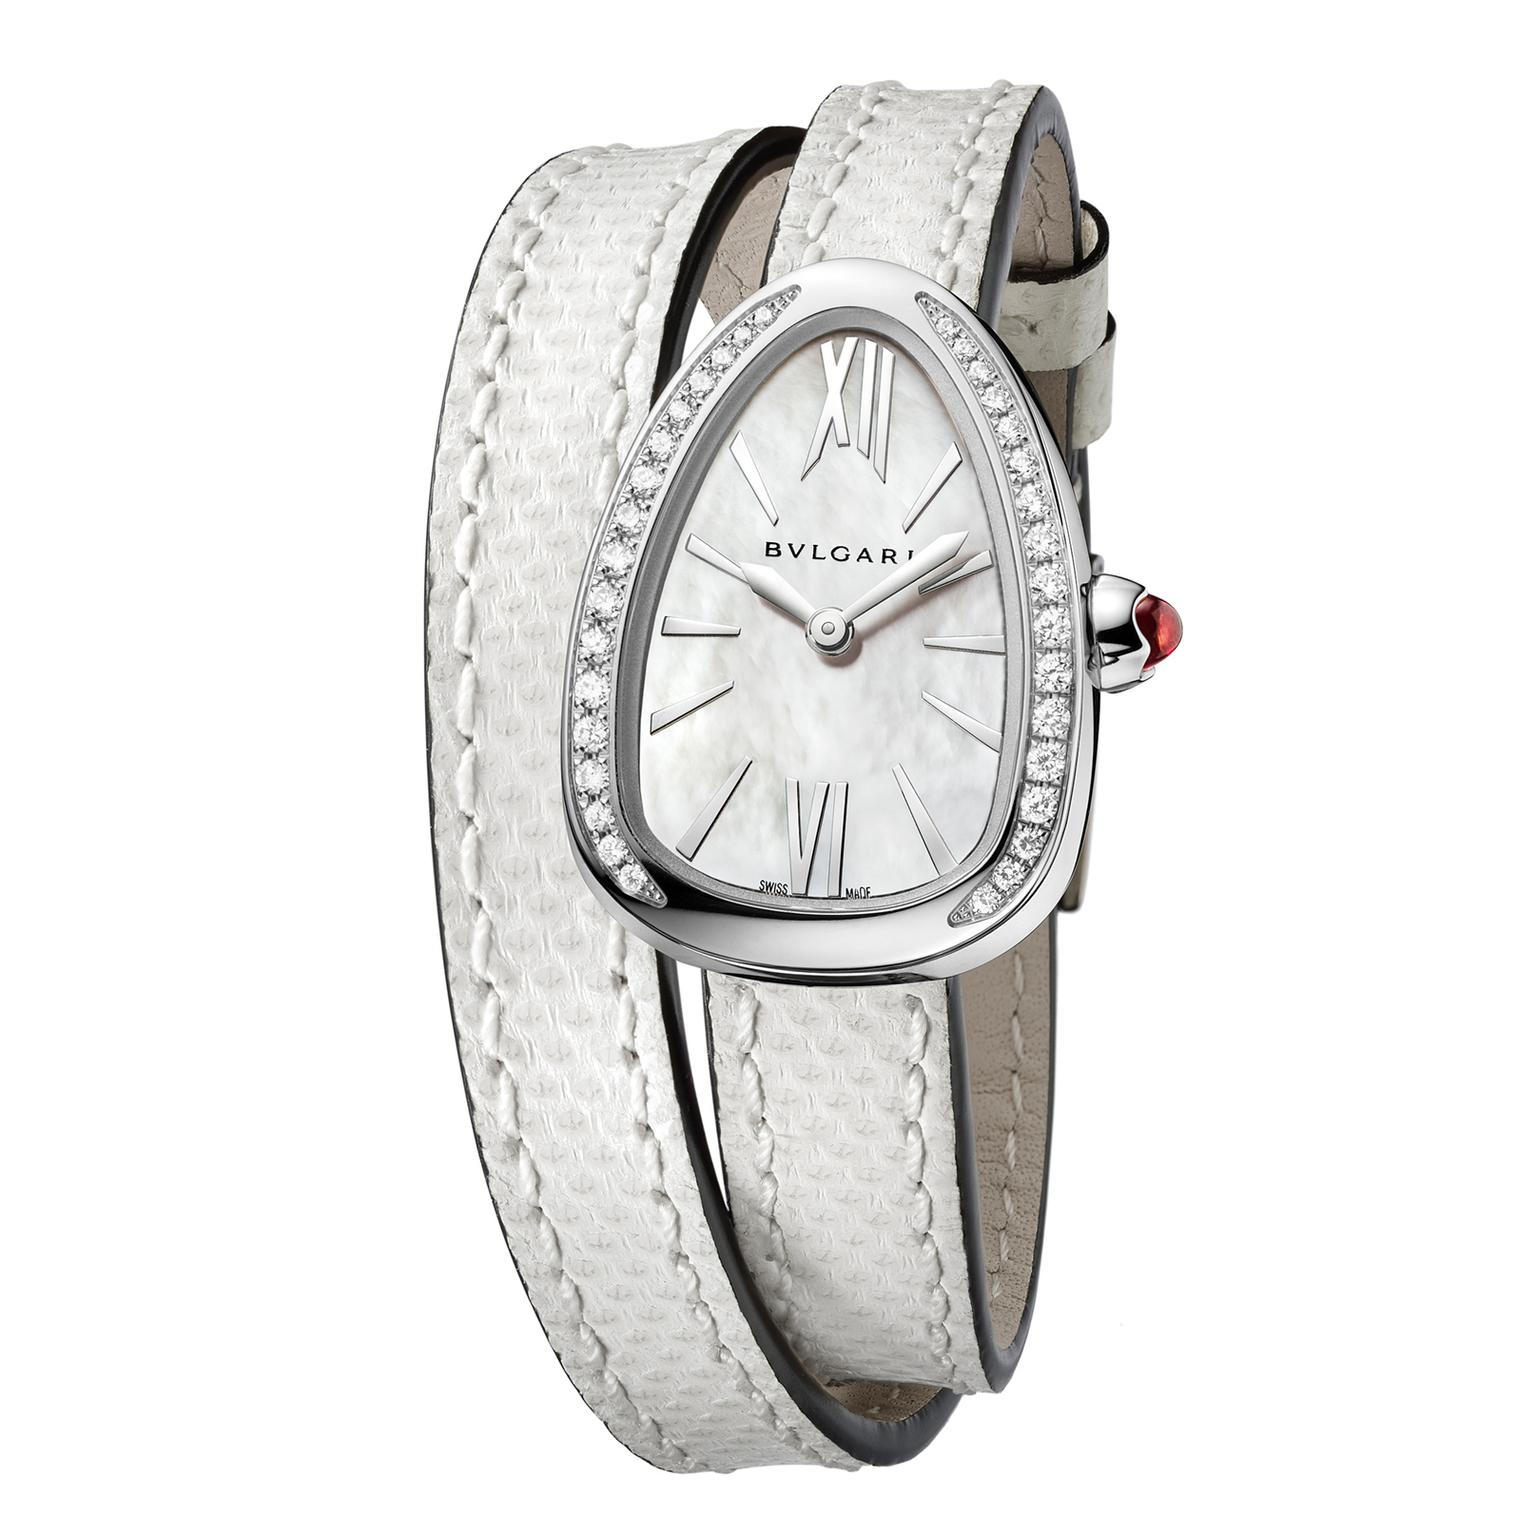 Bulgari Serpenti watch in steel with diamonds